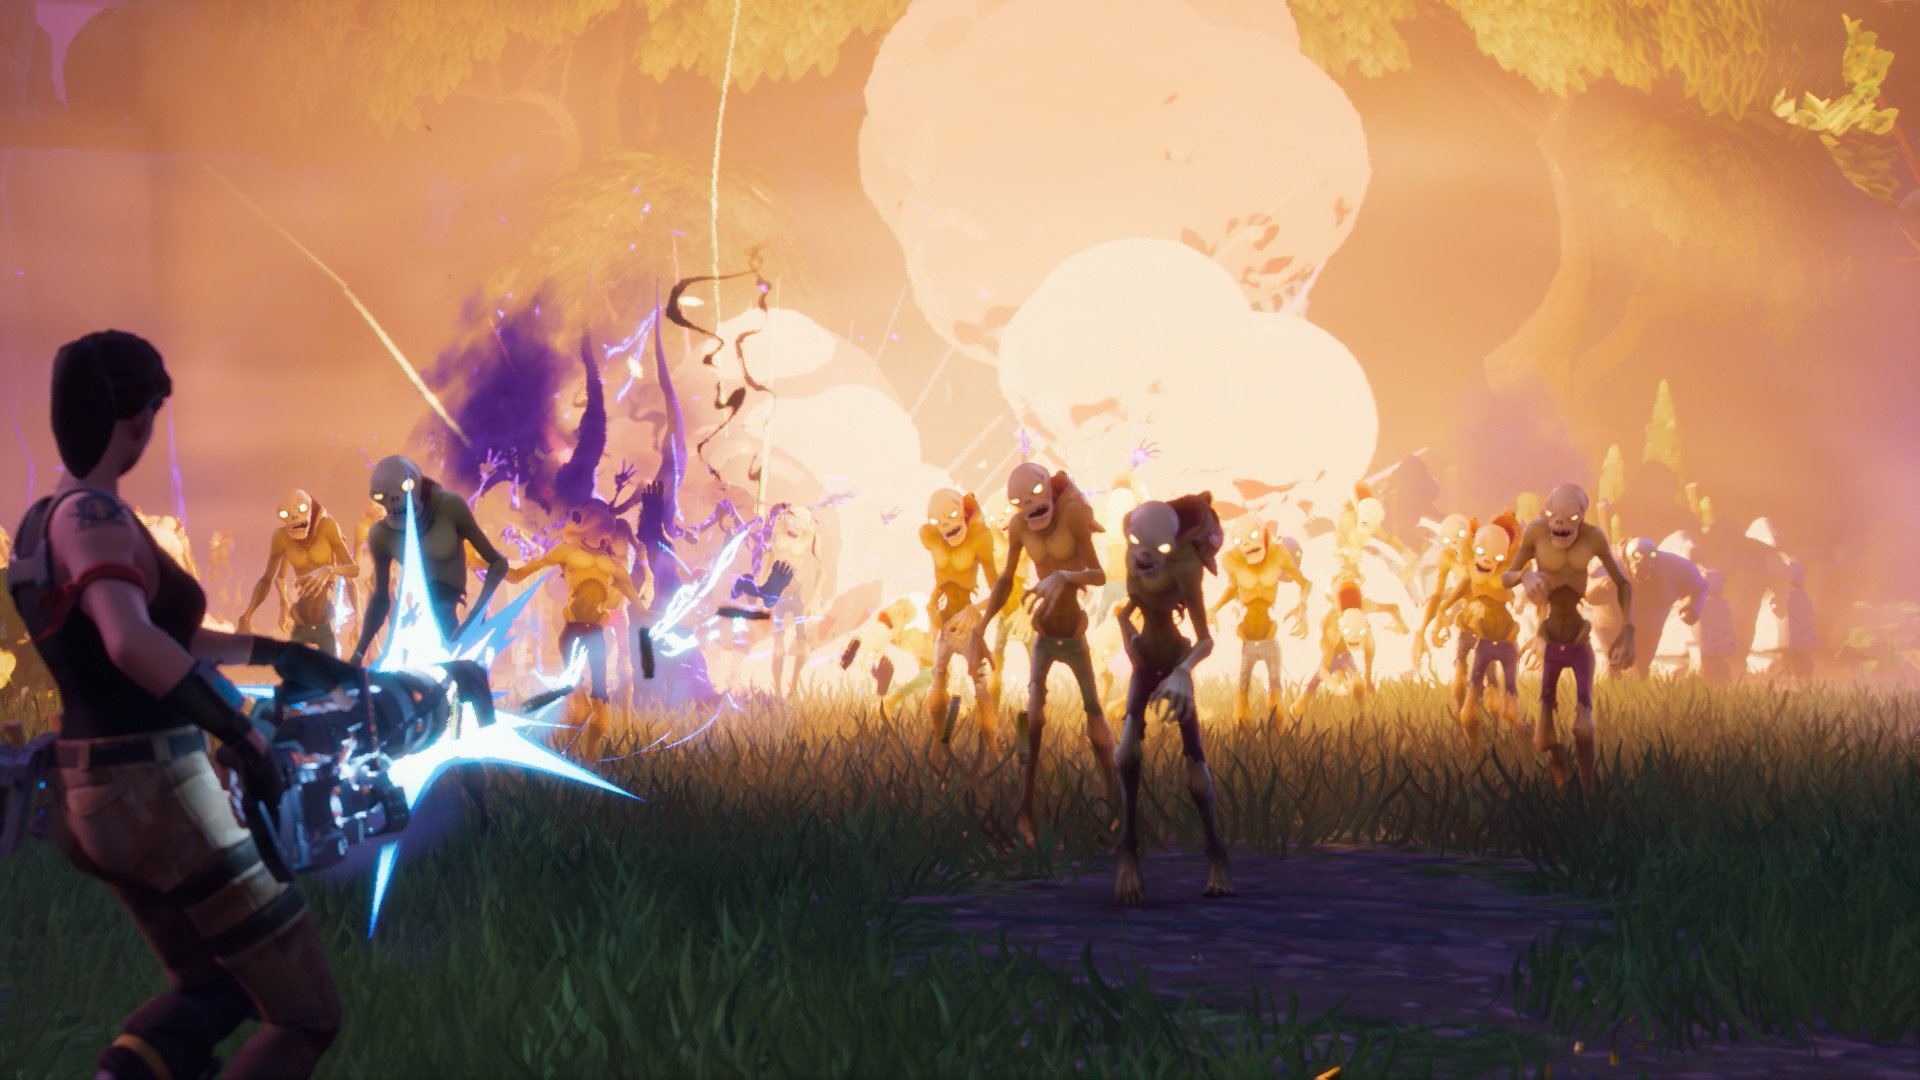 Fortnite Save The World Reportedly Set To Go Free To Play Fortnite Intel